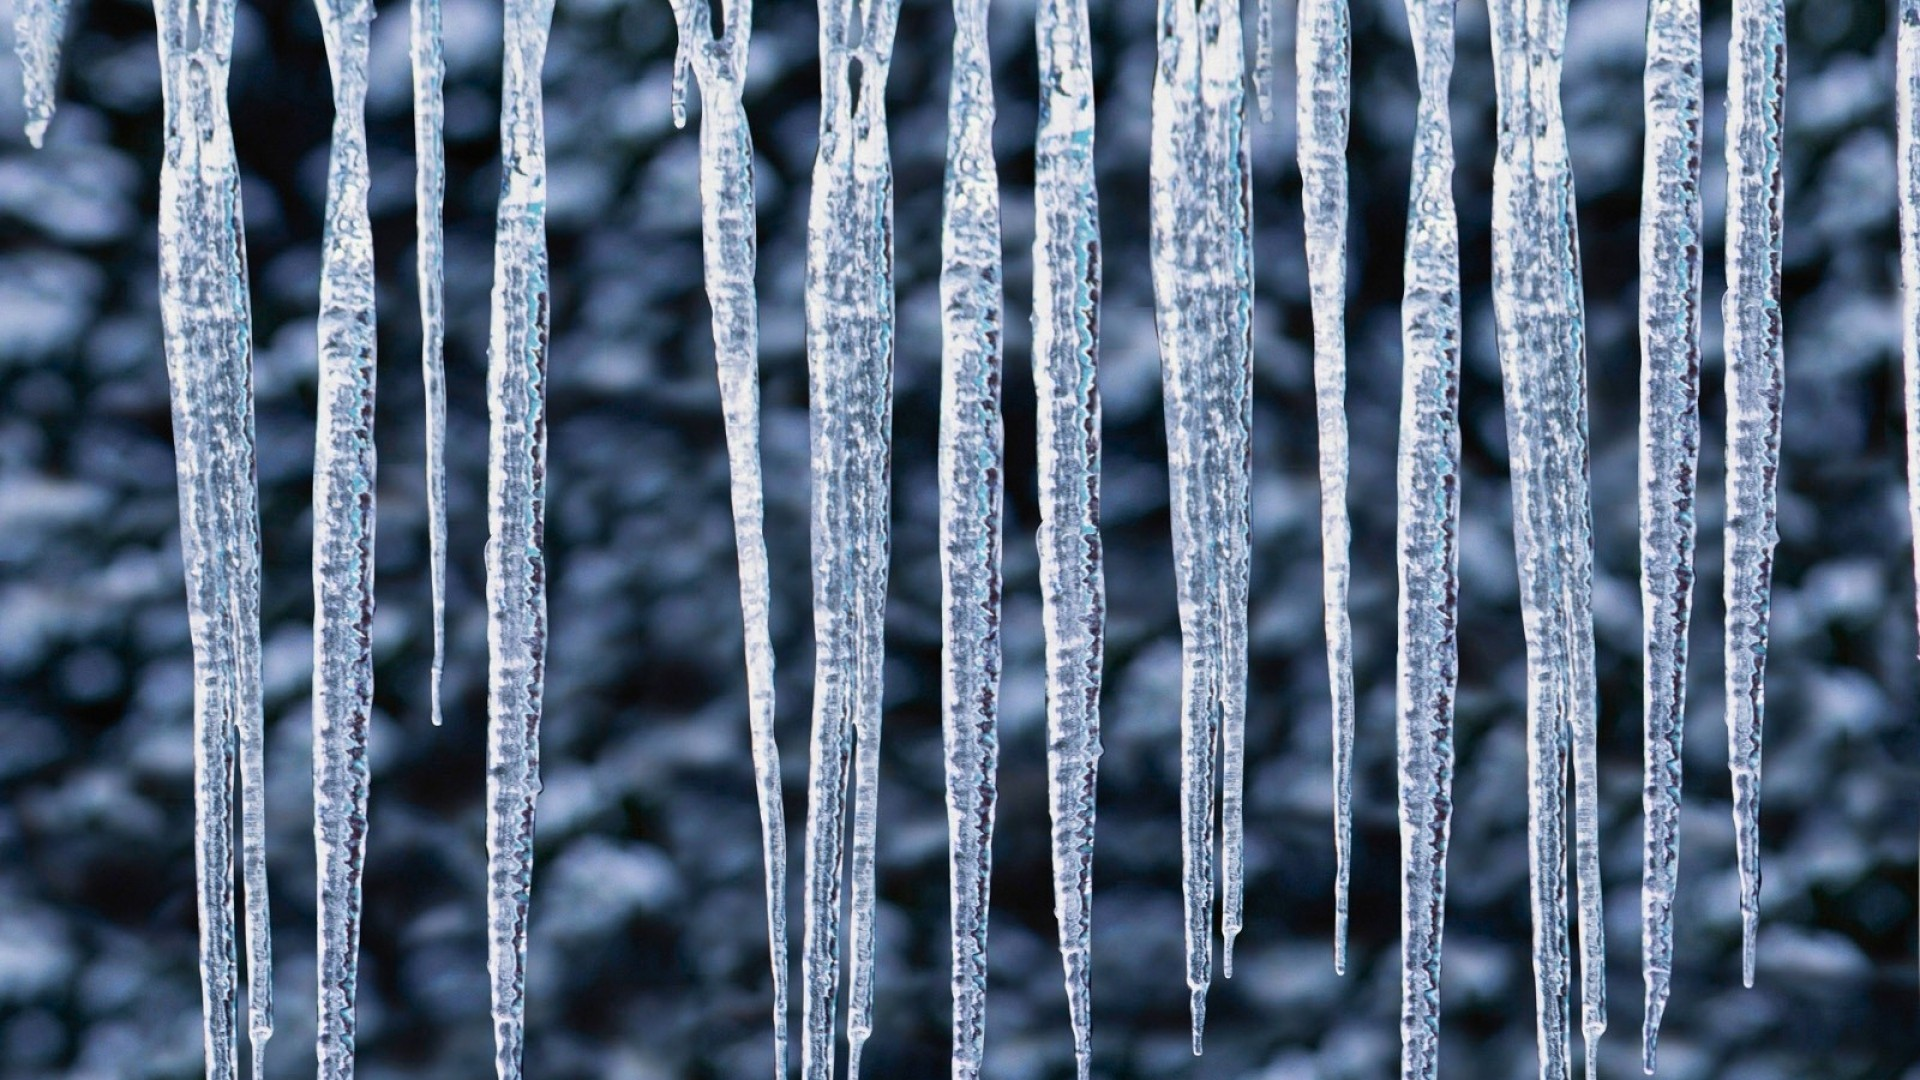 Icicles wallpaper